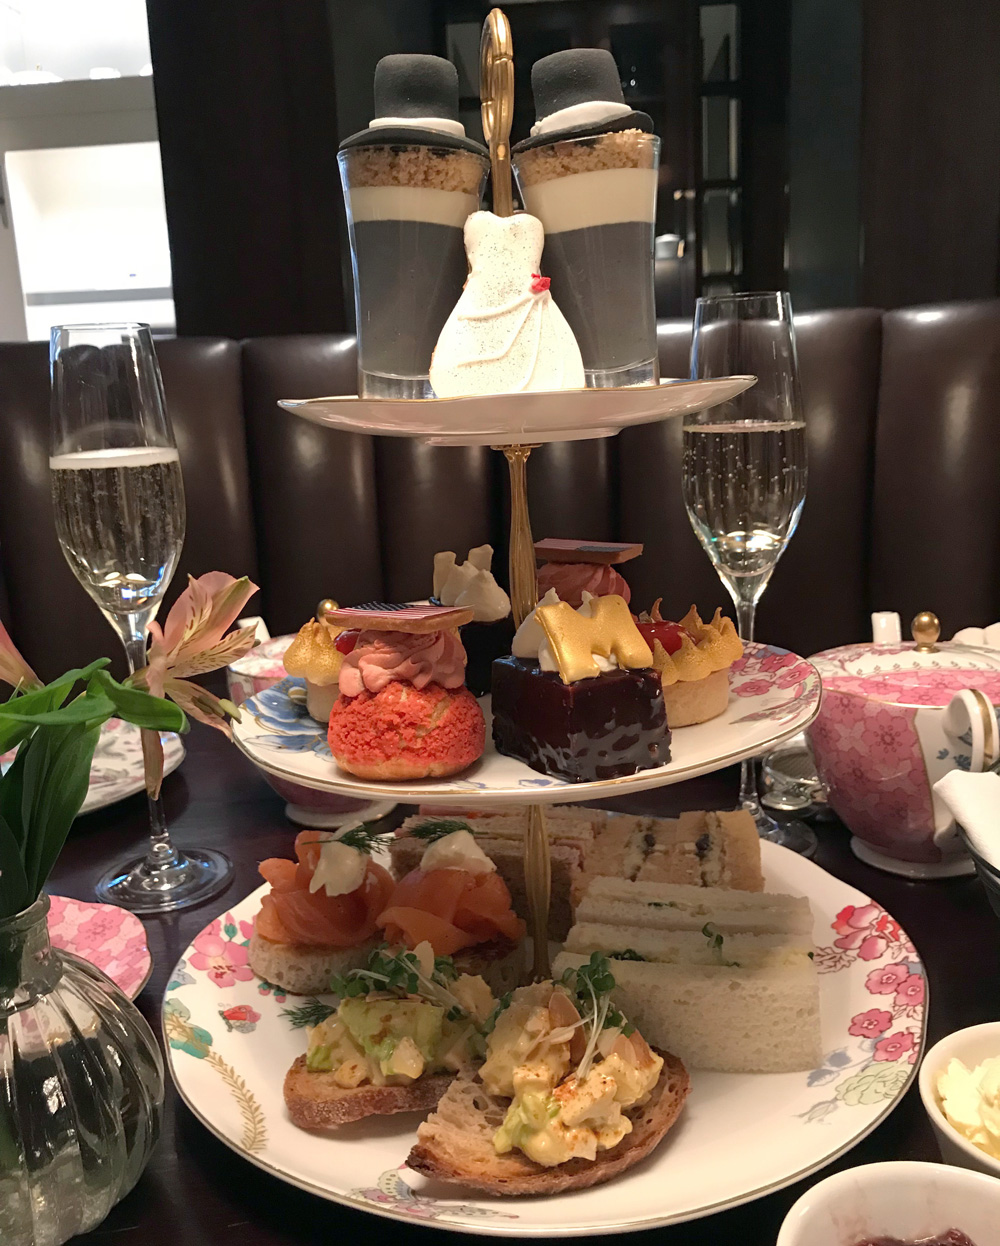 The Royal Wedding Afternoon Tea at The Arch London